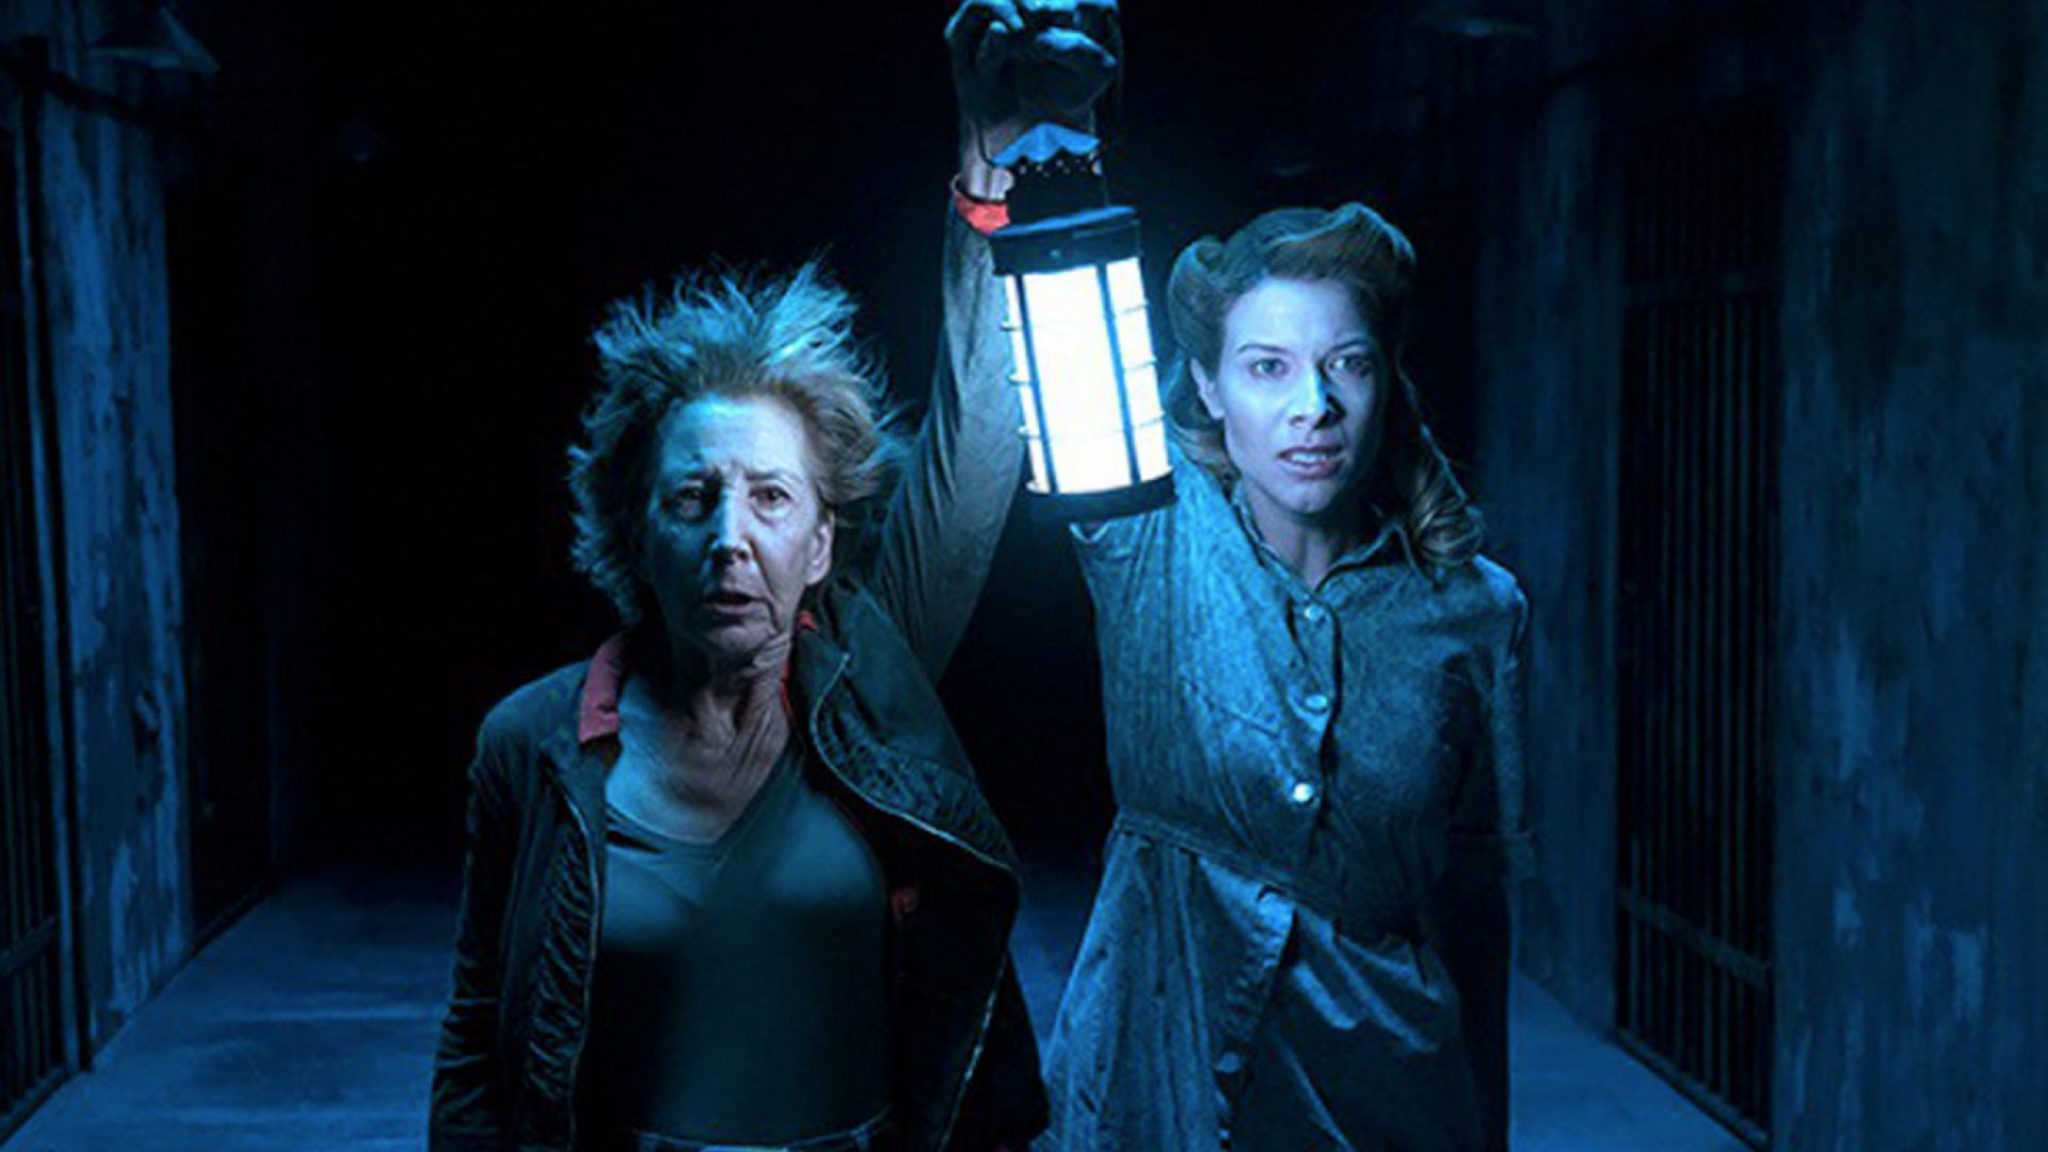 (l to r) Lin Shaye and niece Tessa Ferrer venture further into The Further in Insidious: The Last Key (2018)